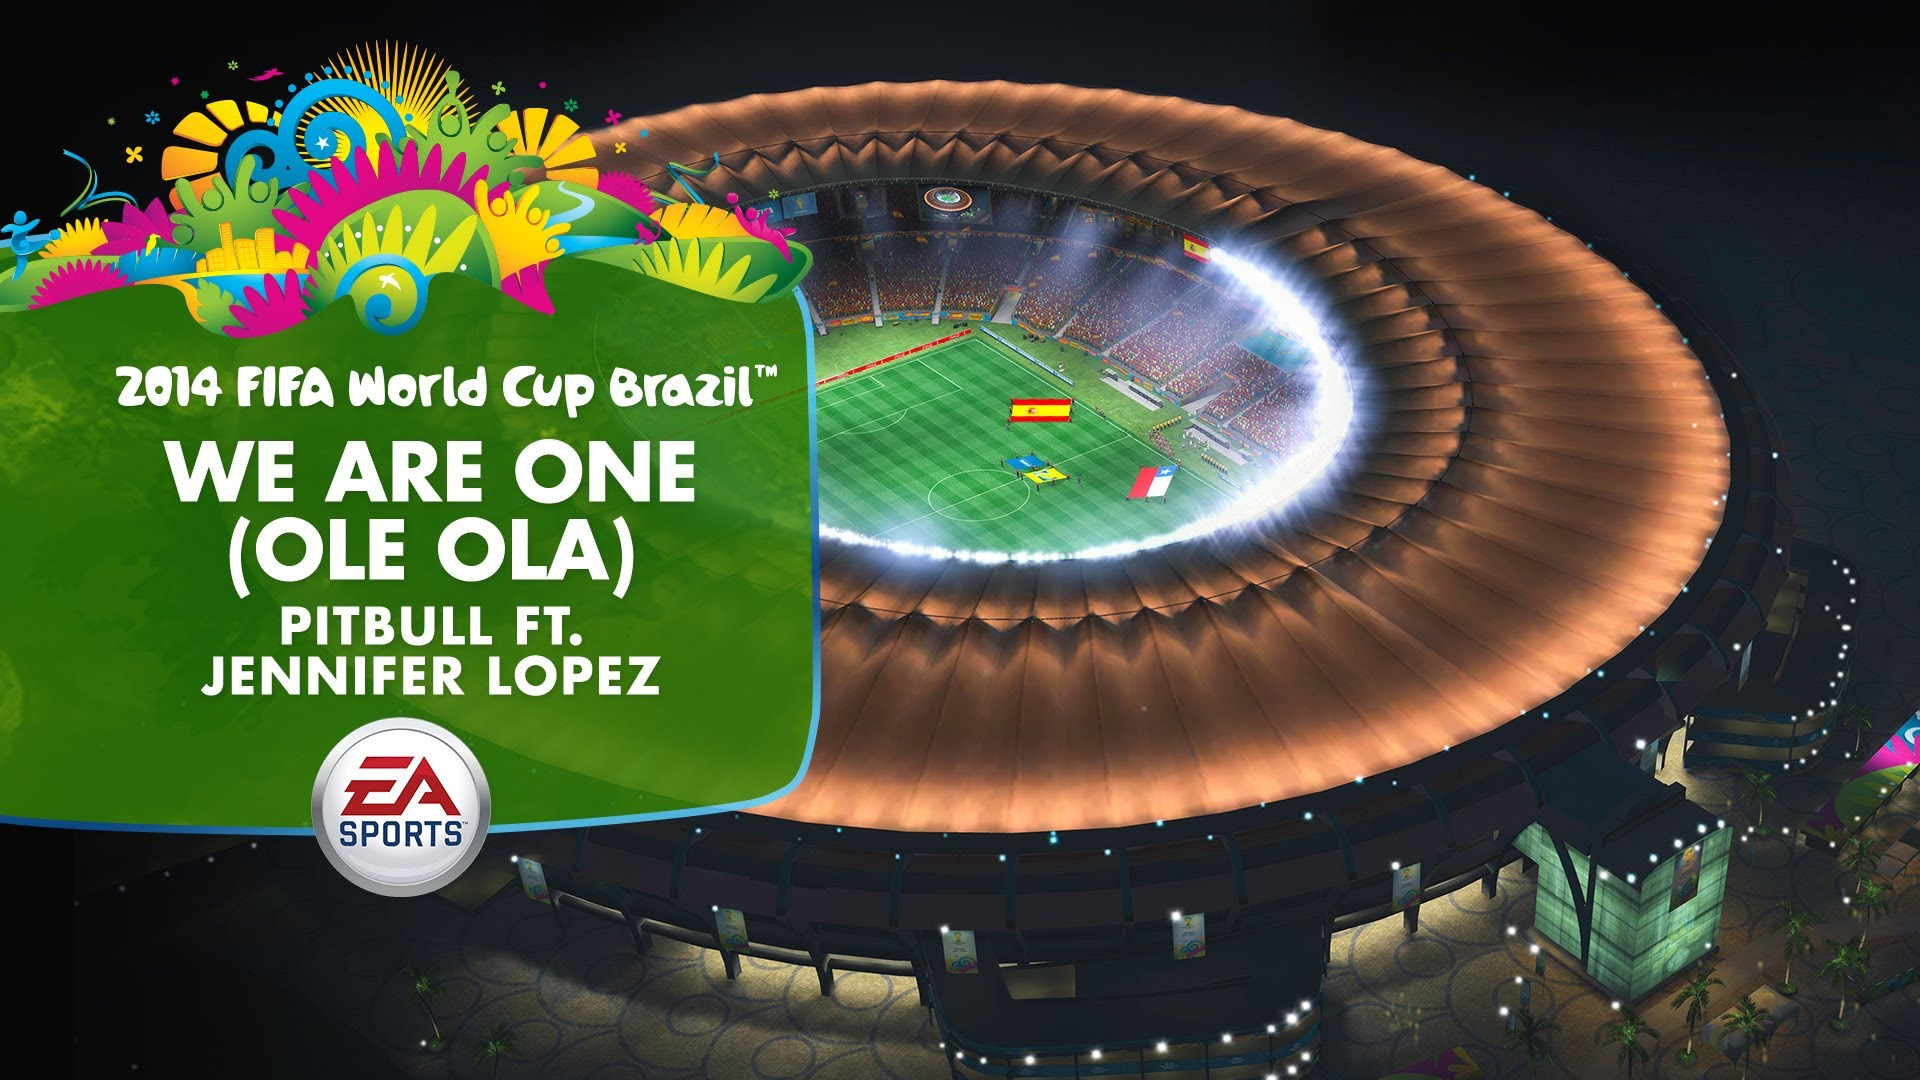 FIFA World Cup 2014 Opening Ceremony - 7torrentsdownload